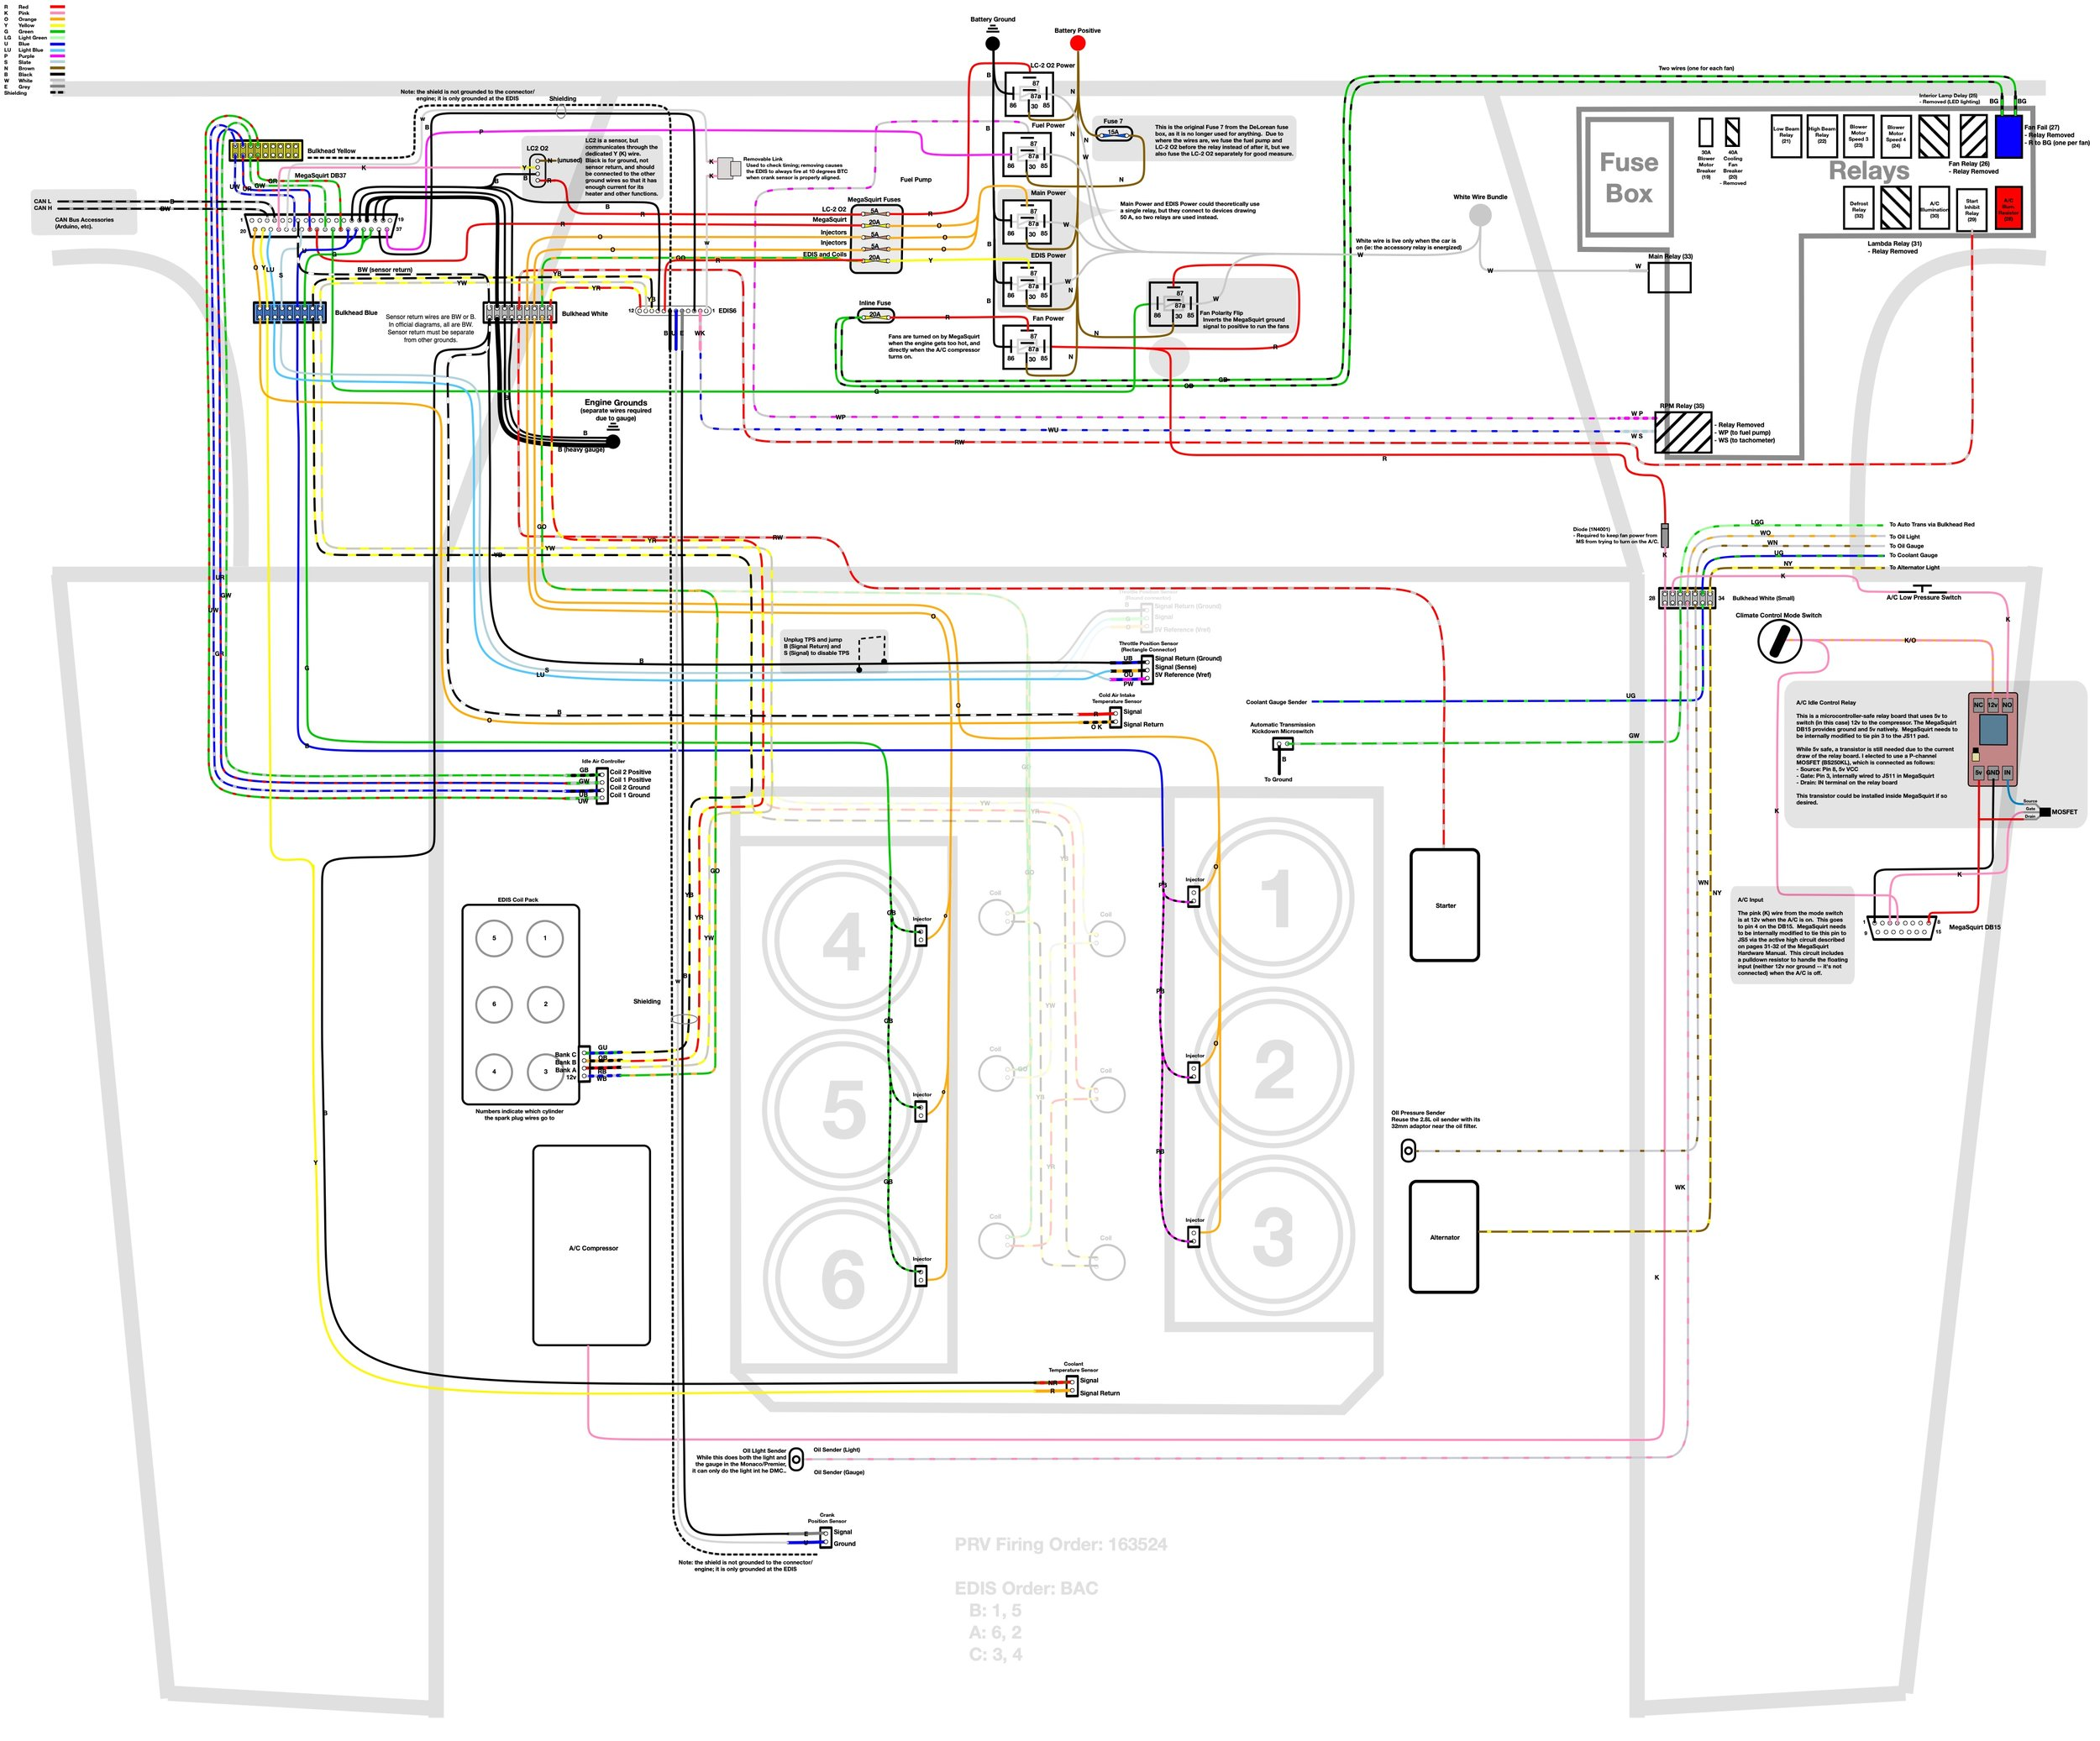 DeLorean+EFI+Wiring?format=1500w wiring, installing the new harness and fuel injector refurbishing delorean fuse box diagram at n-0.co